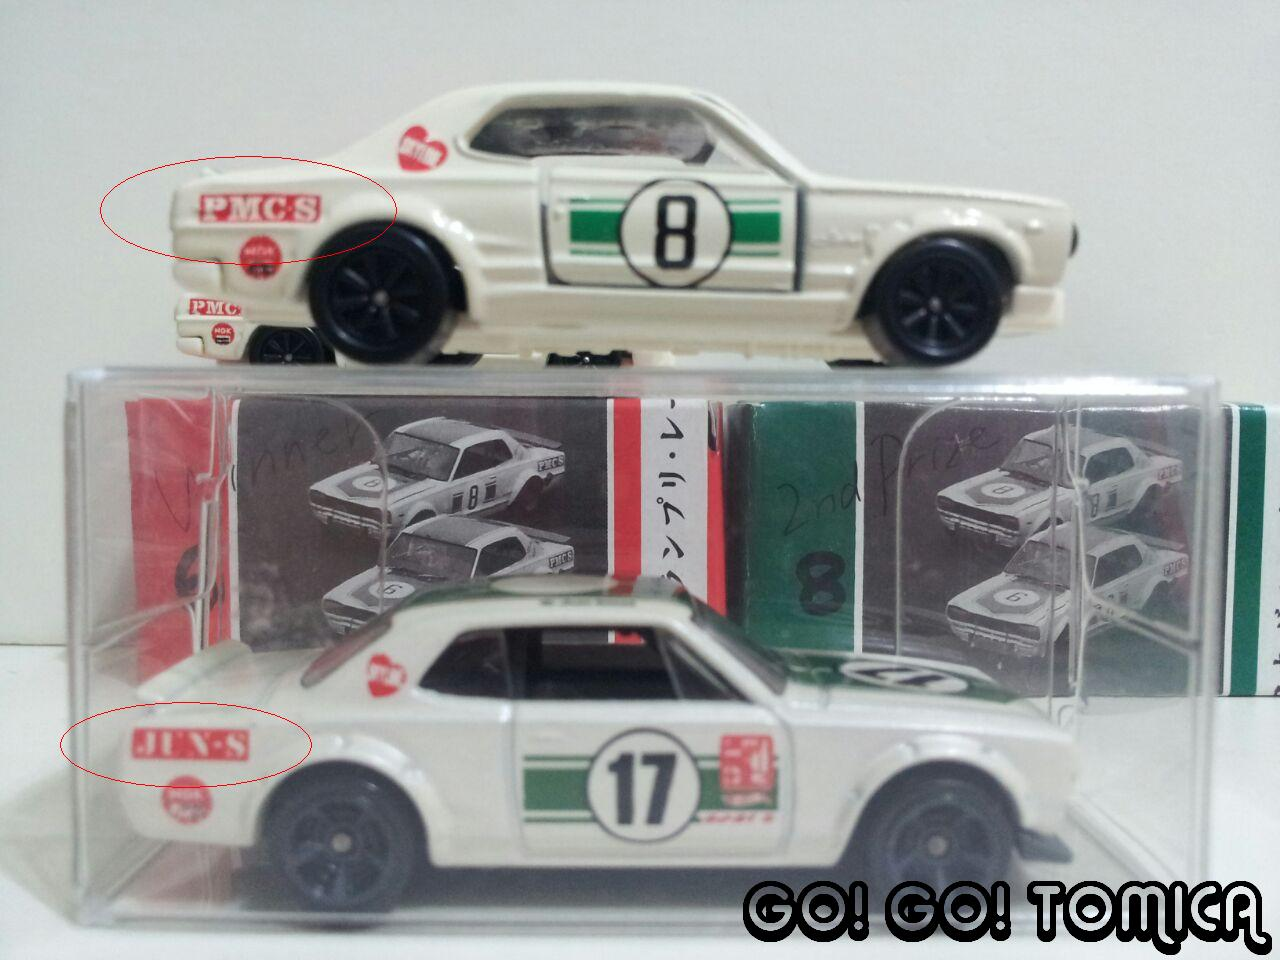 Go Tomica January 2013 Decal Hot Wheels Datsun Wagon Japan Histori When Comes To Proportions Is Better Because All Are Made Scale While Totally Not